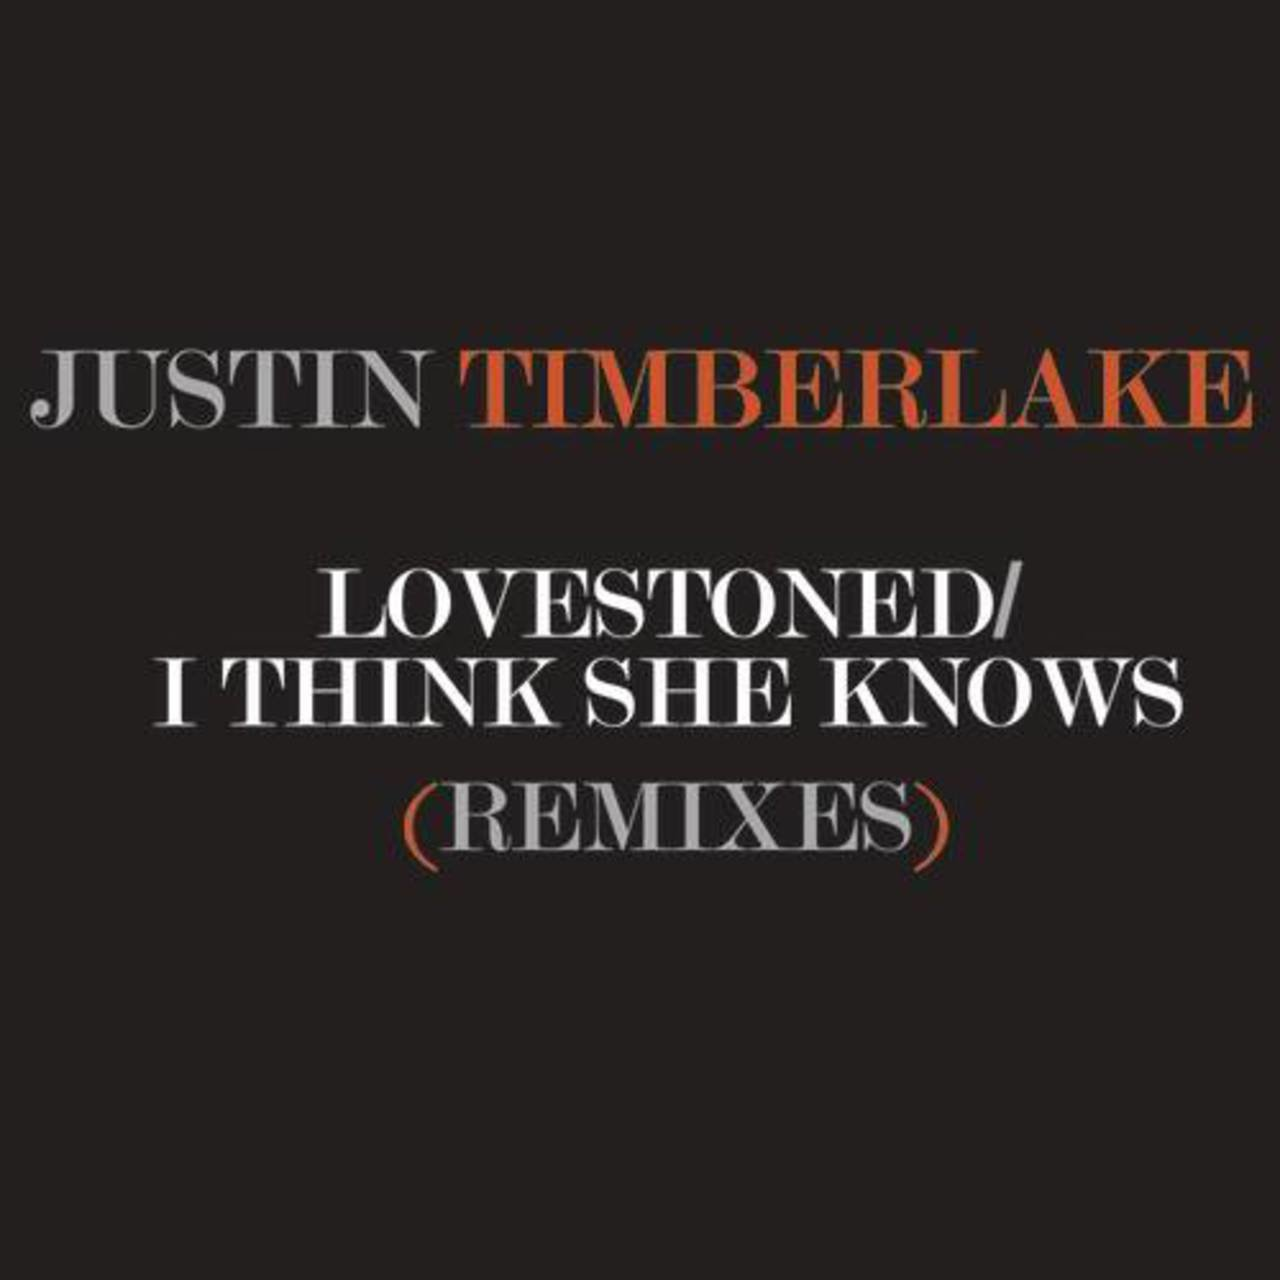 LoveStoned/I Think She Knows (Remixes)